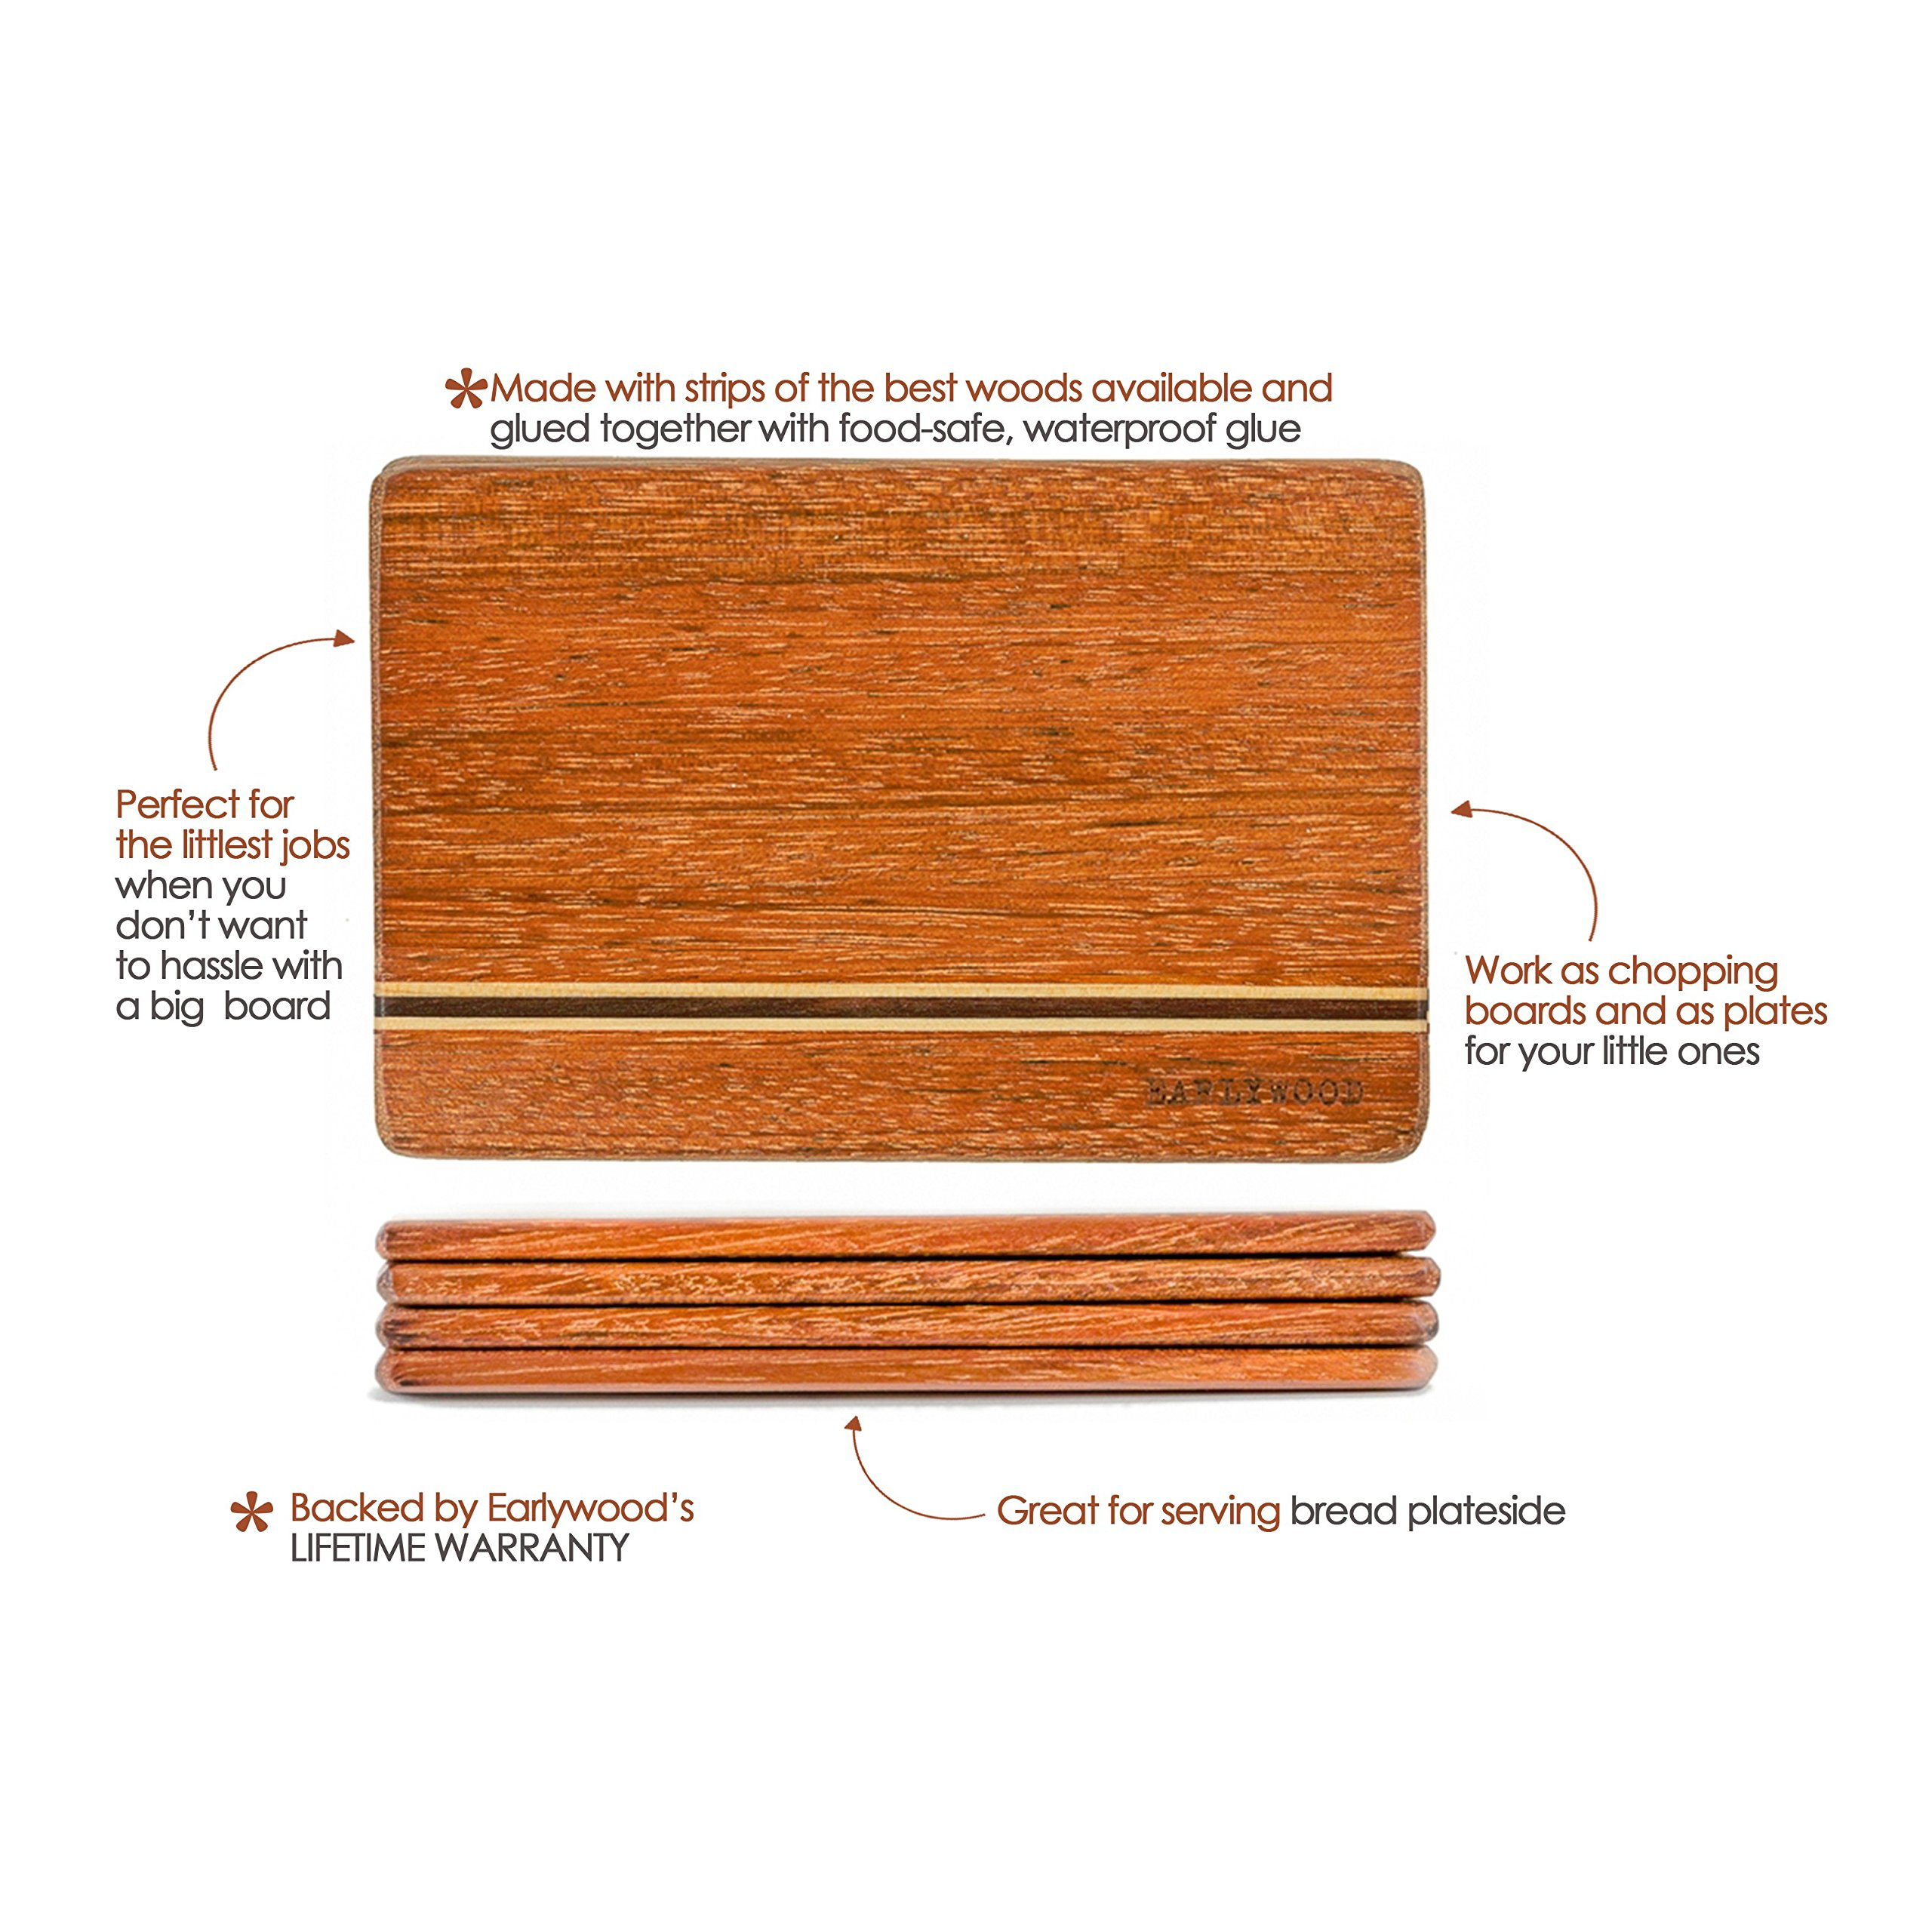 Small Wood Cutting Board Set. Set of 4 mini wooden cutting boards. Light and thin wood serving boards for wood cheese boards, spoon rests, trivets, wood serving set or bar cutting board set. The best! by Earlywood (Image #3)